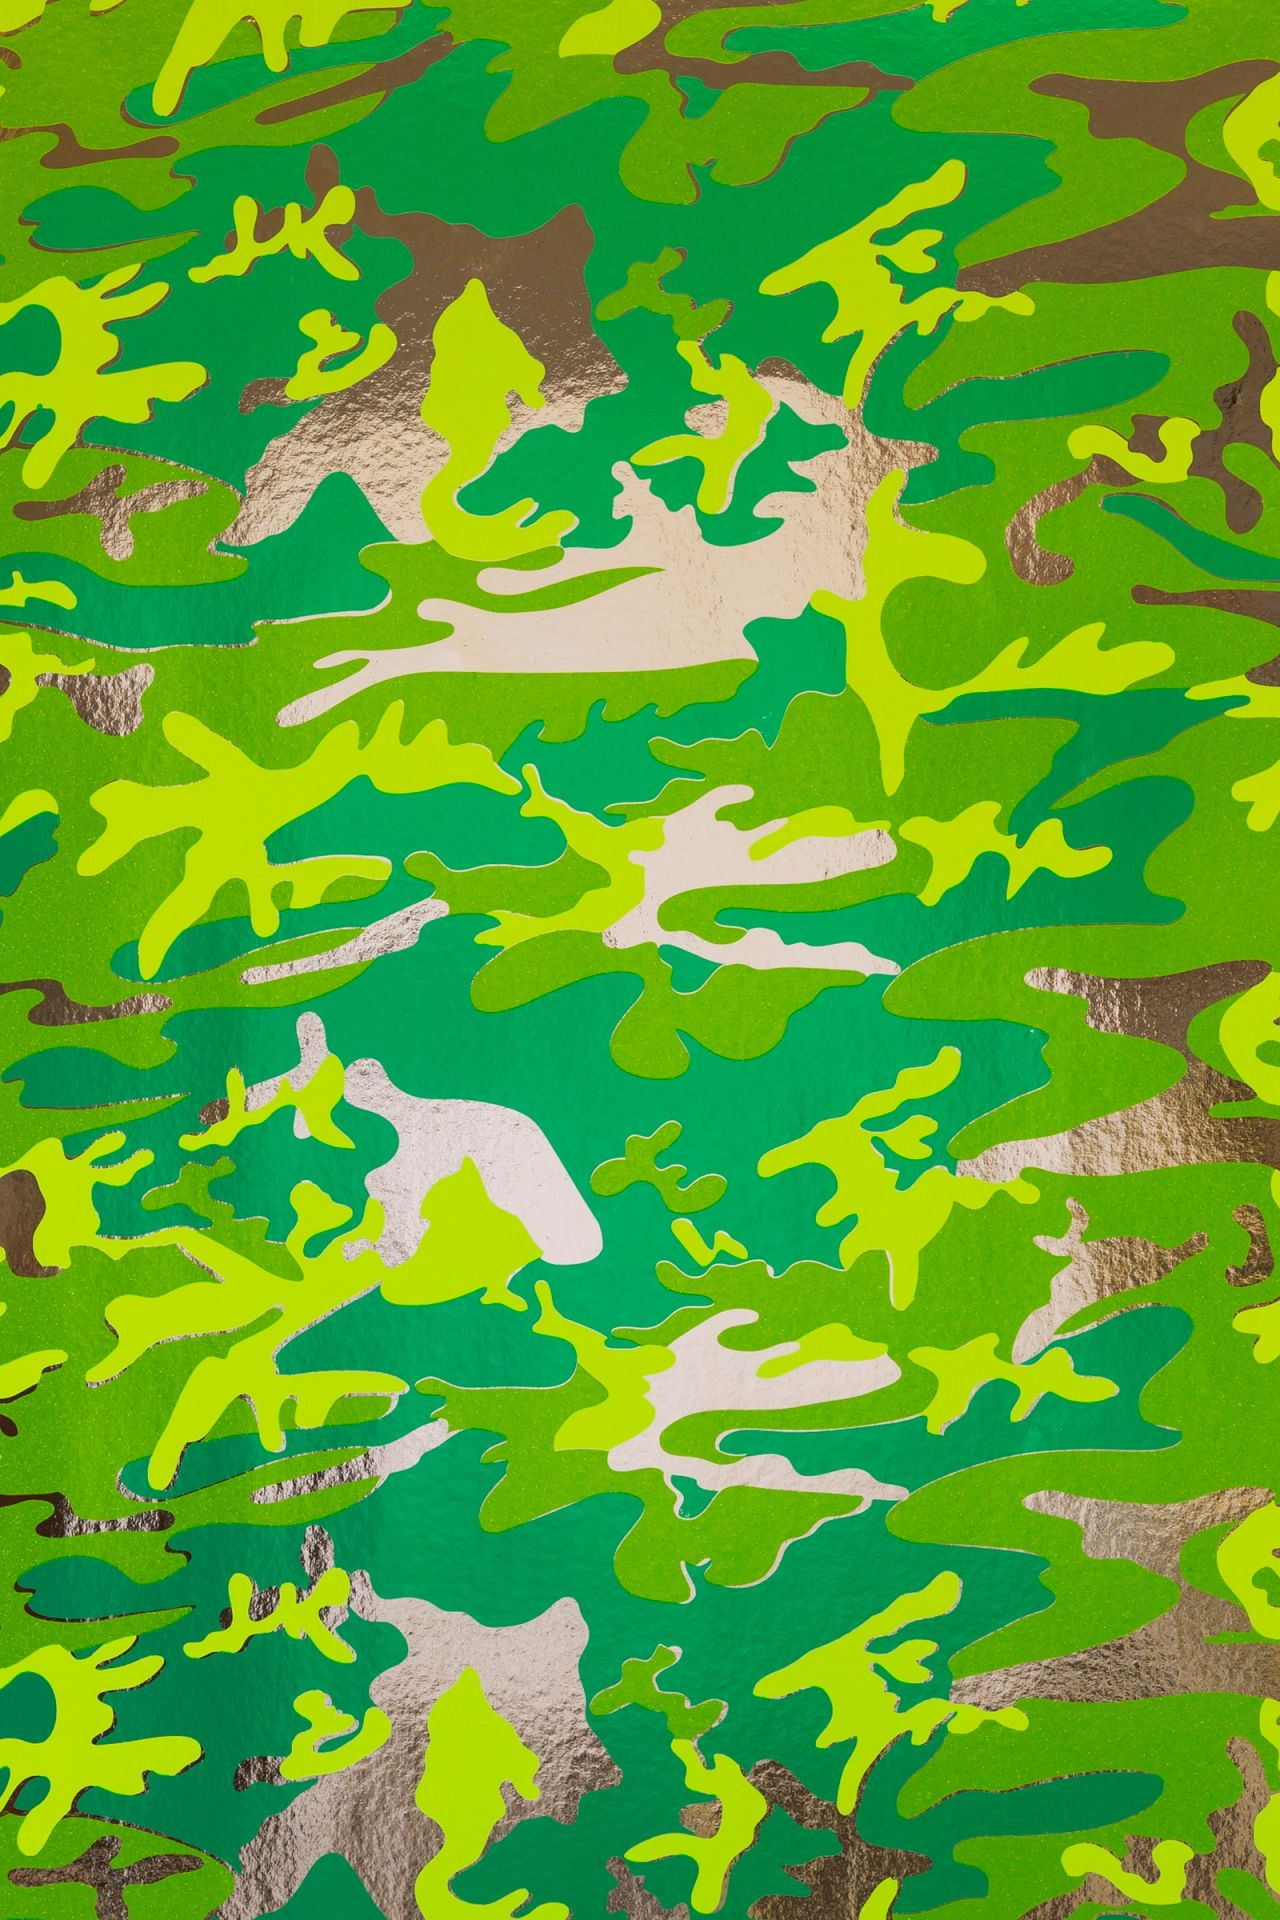 Andy Warhol Camouflage - HD Wallpaper